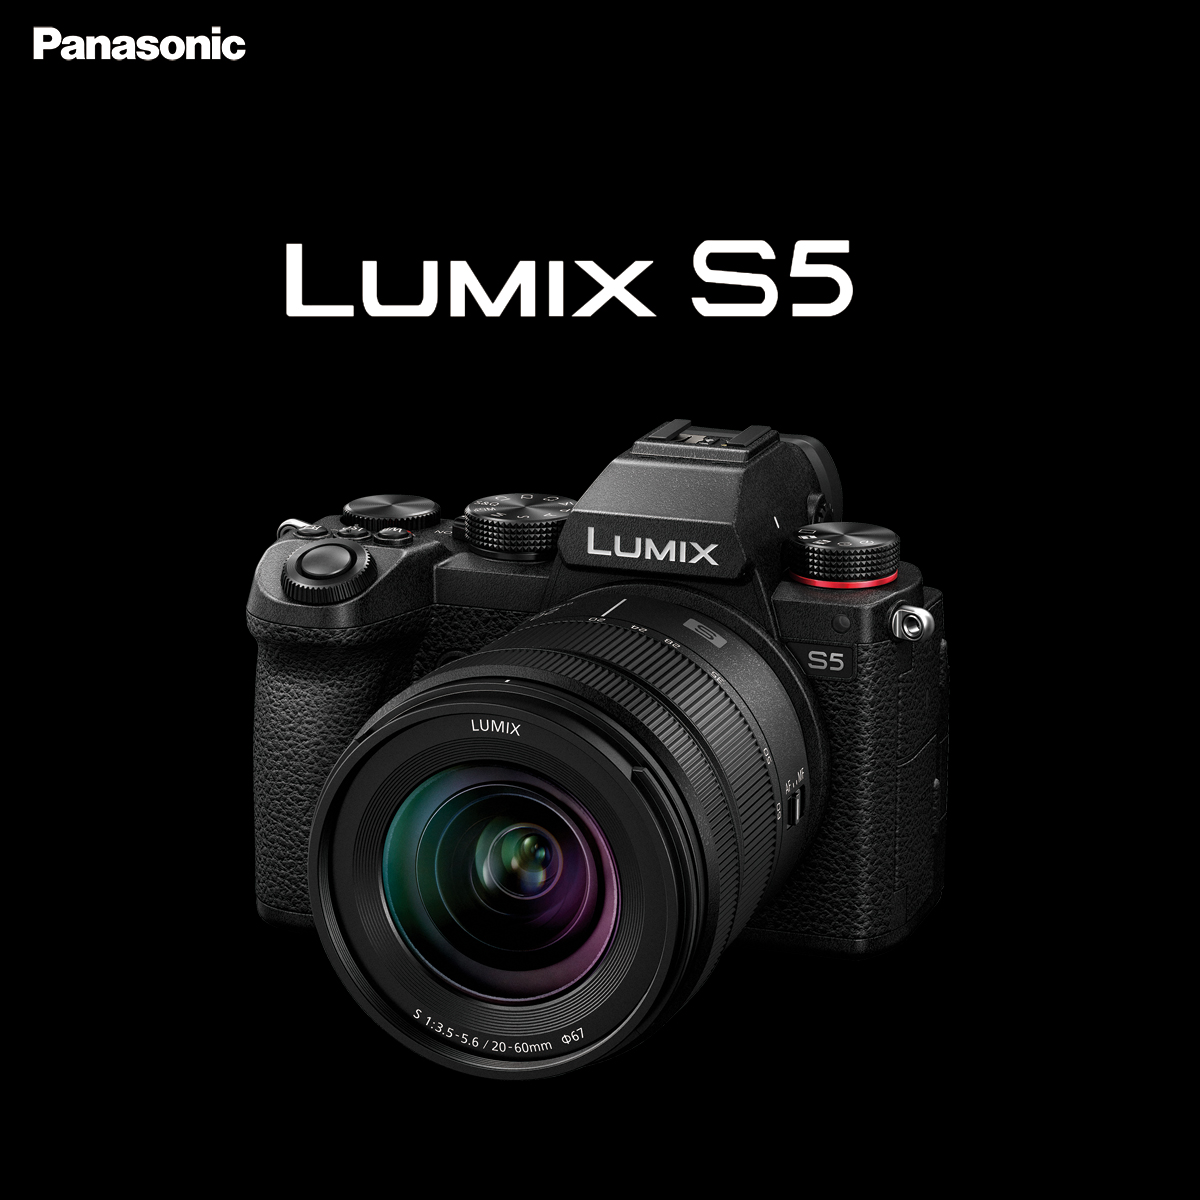 Panasonic_LUMIXS5